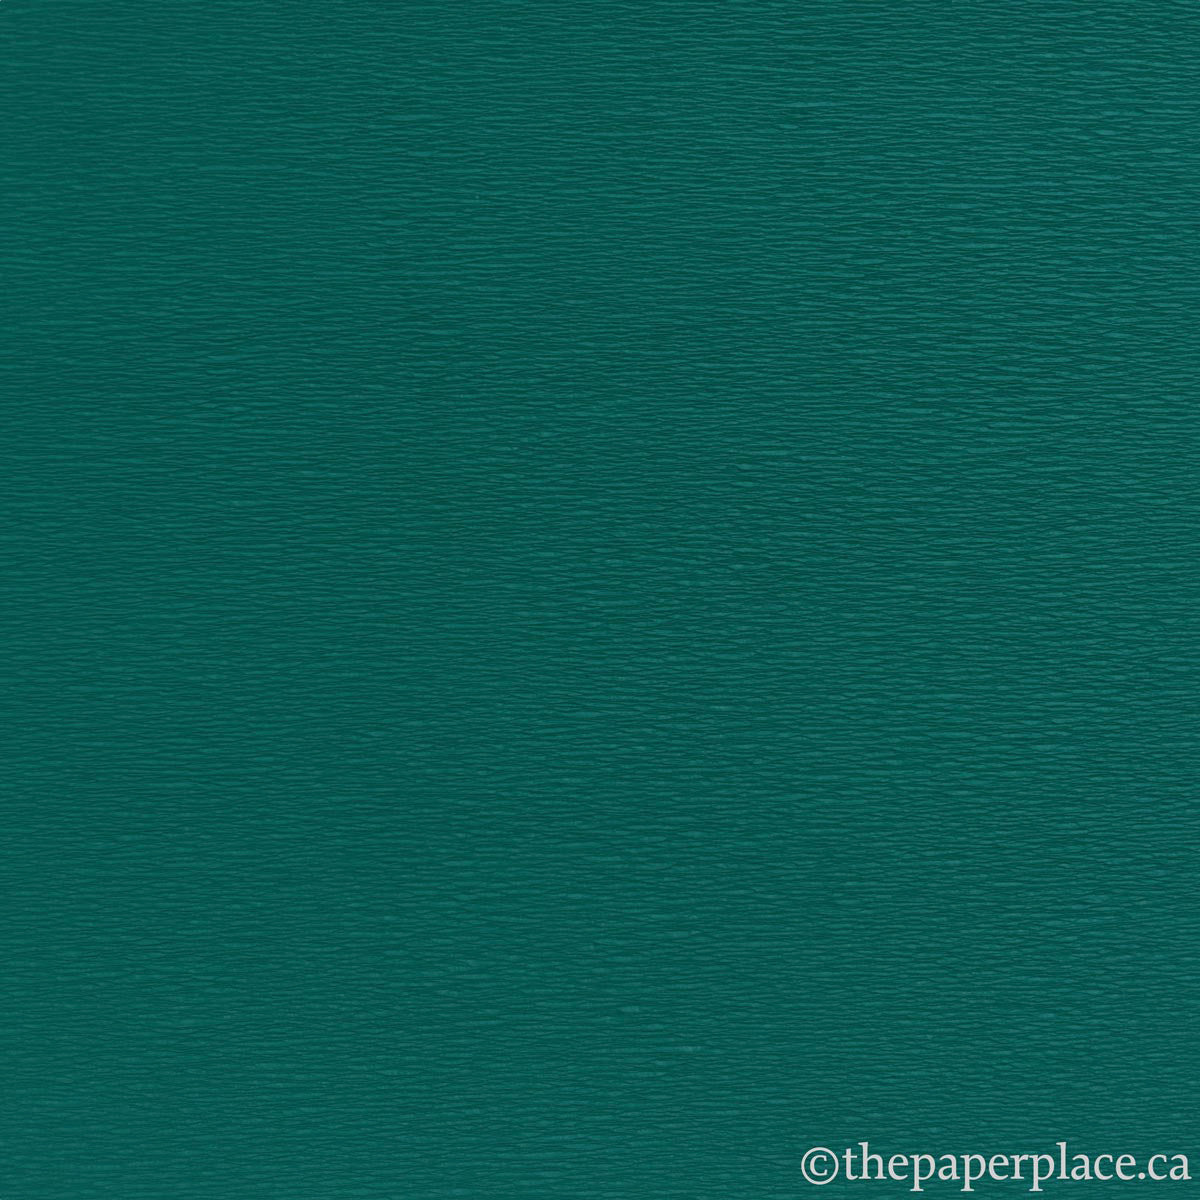 Single-Sided Crepe - Forest Green